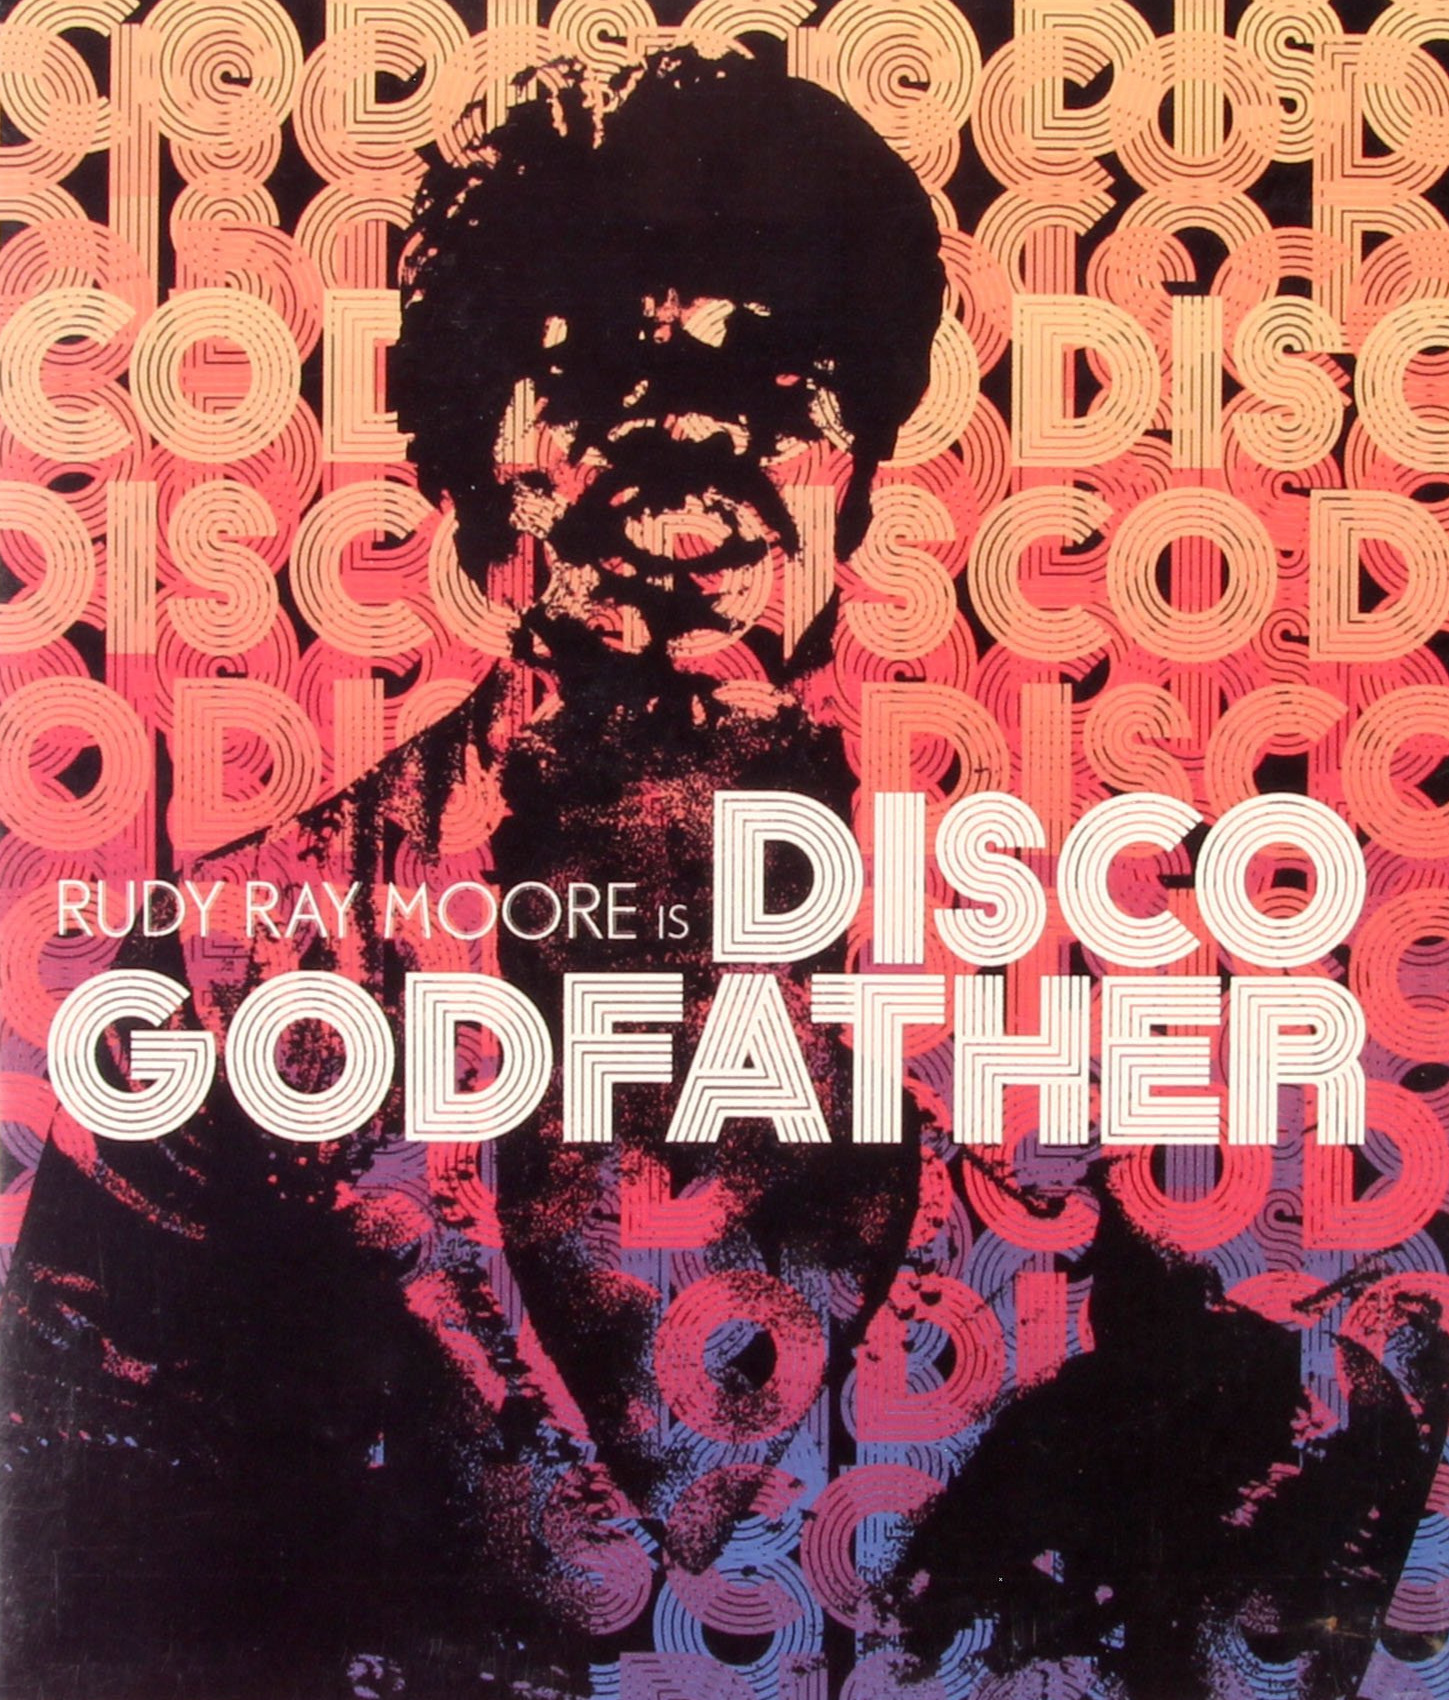 DISCO GODFATHER - (RECOMMENDED PURCHASE)Rudy Ray Moore is The Disco Godfather, owner and MC at the baddest disco in town. But there's a new evil in the community: Angel Dust. Determined to find and destroy the source of 'the whack,' The Disco Godfather becomes a one-man fighting machine from south central to Beverly Hills.The last of Rudy Ray Moore's 70s features, DISCO GODFATHER is easily the strangest and most original of his filmic output. Combining his trademark Kung-fu action with social commentary and hallucinogenic nightmare sequences which evoke the surreal weirdness of Coffin Joe, DISCO GODFATHER is an unforgettable cinematic finale from one of the greatest names in Blaxploitation film history.Newly restored from its long lost 35mm original negative, Vinegar Syndrome proudly presents DISCO GODFATHER on Blu-ray for the first time, packed with all new special features.Directed by: J. Robert WagonerStarring: Rudy Ray Moore, Lady Reed, Carol Speed, Jerry Jones, Jimmy Lynch, Hawthorne James1979 / 98 minutes / Color / 1.85:1-All extras on both formats-Region free Blu-ray and DVD combo pack-Scanned & restored in 2k from 35mm original camera negative-